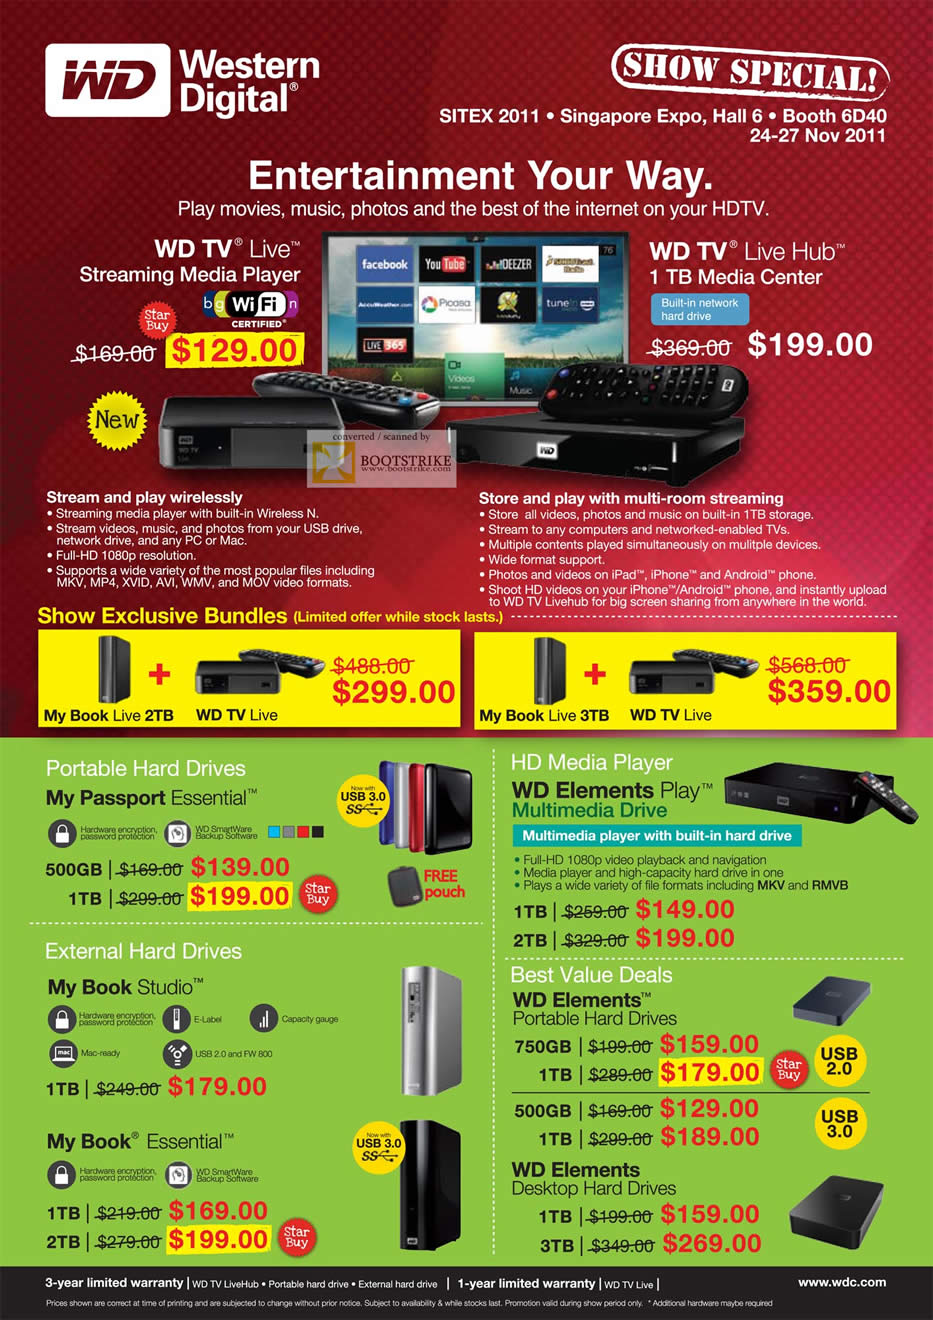 Wd tv live prices / Hotwire promo codes